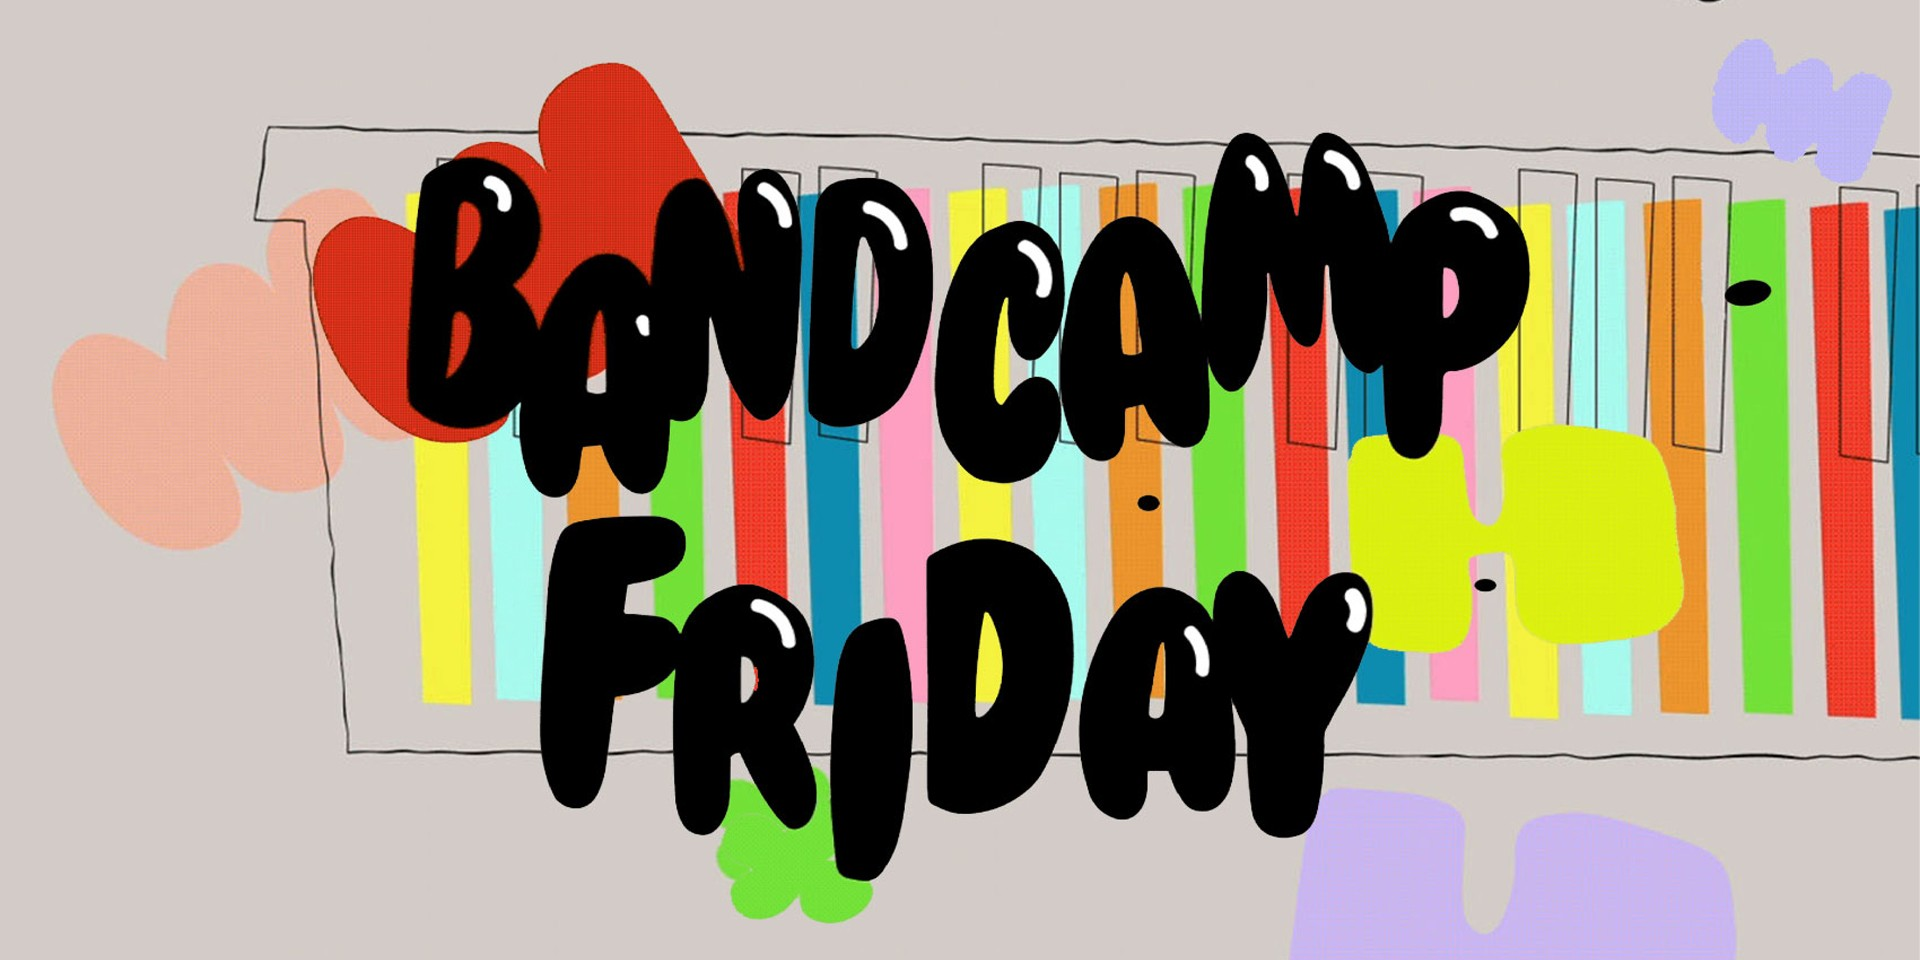 Bandcamp Fridays, which raked in $40 Million for musicians during the COVID-19 pandemic, will extend into 2021